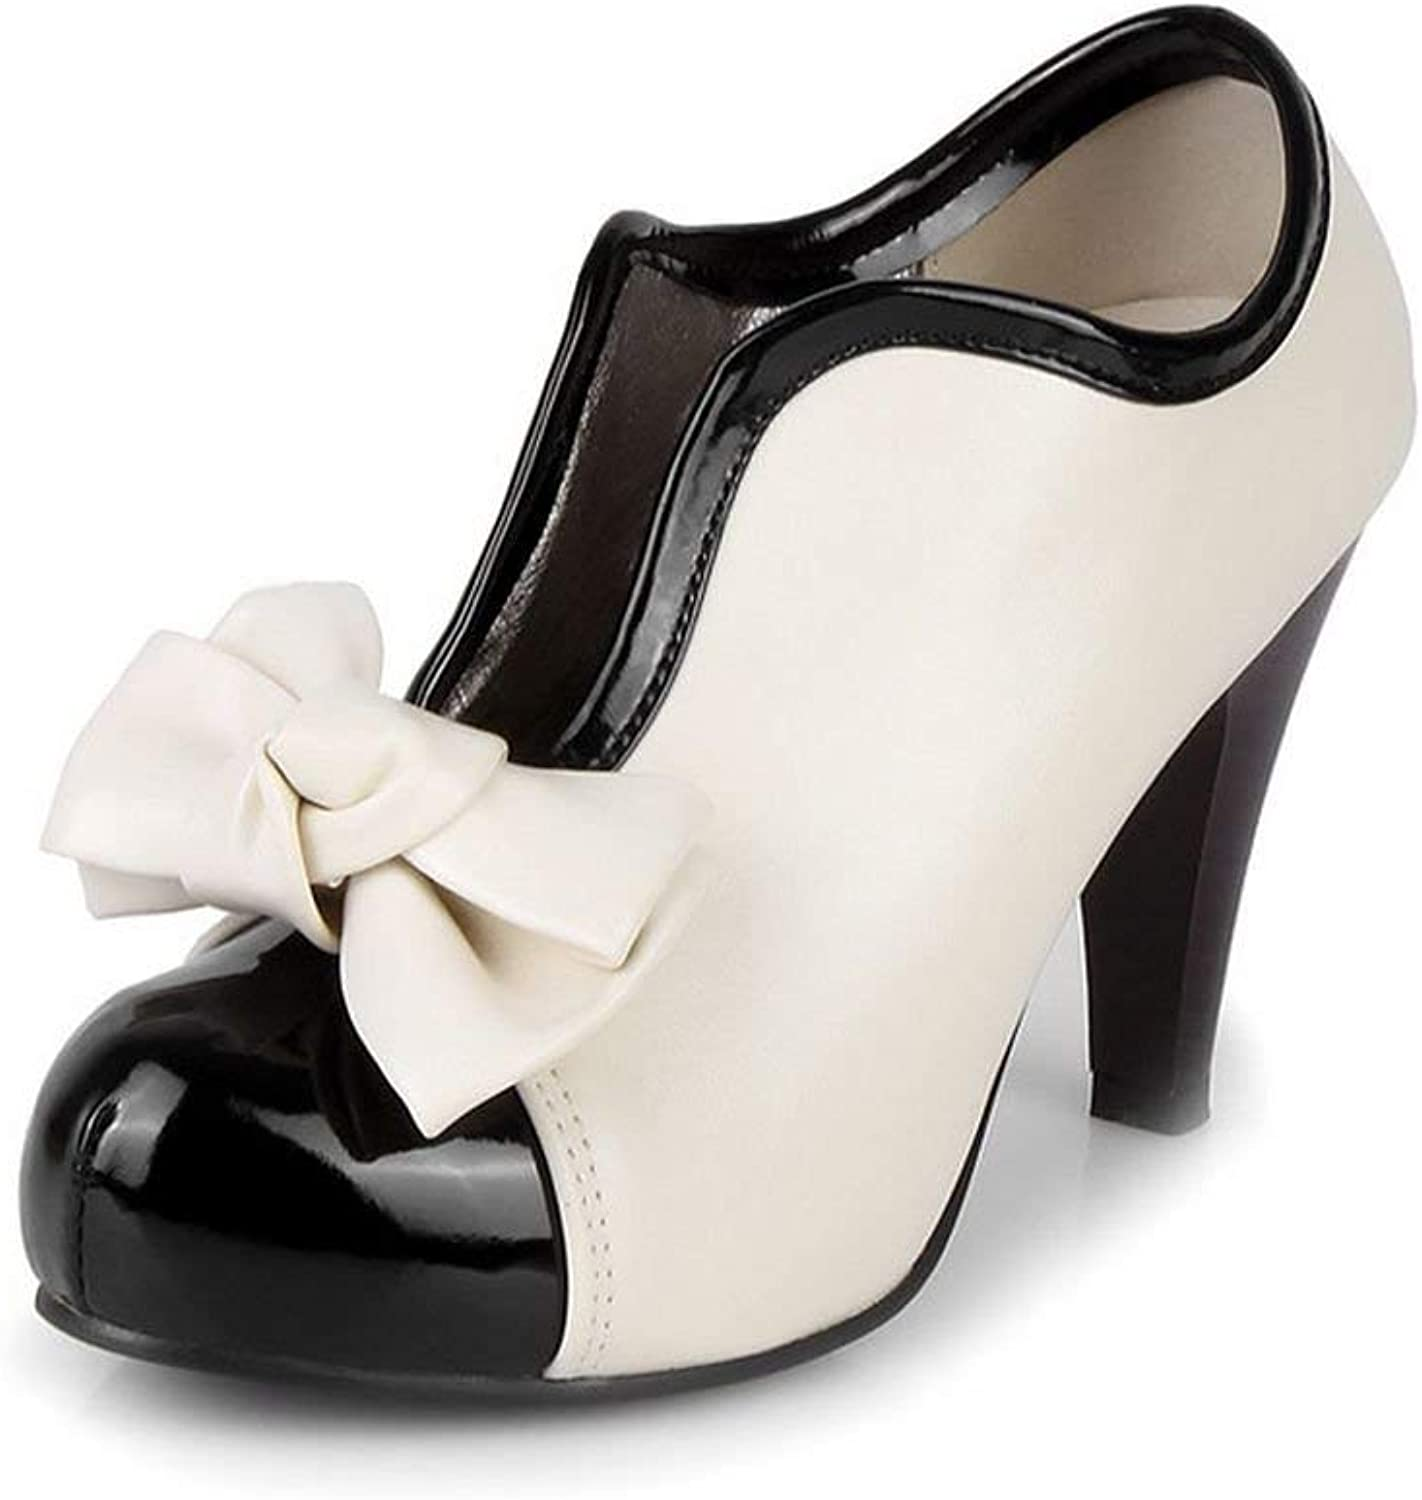 Unm Women's High Heel shoes New Sexy Lady Beige Bow Vintage Bowknot Pumps Platform Round Toe Ladies